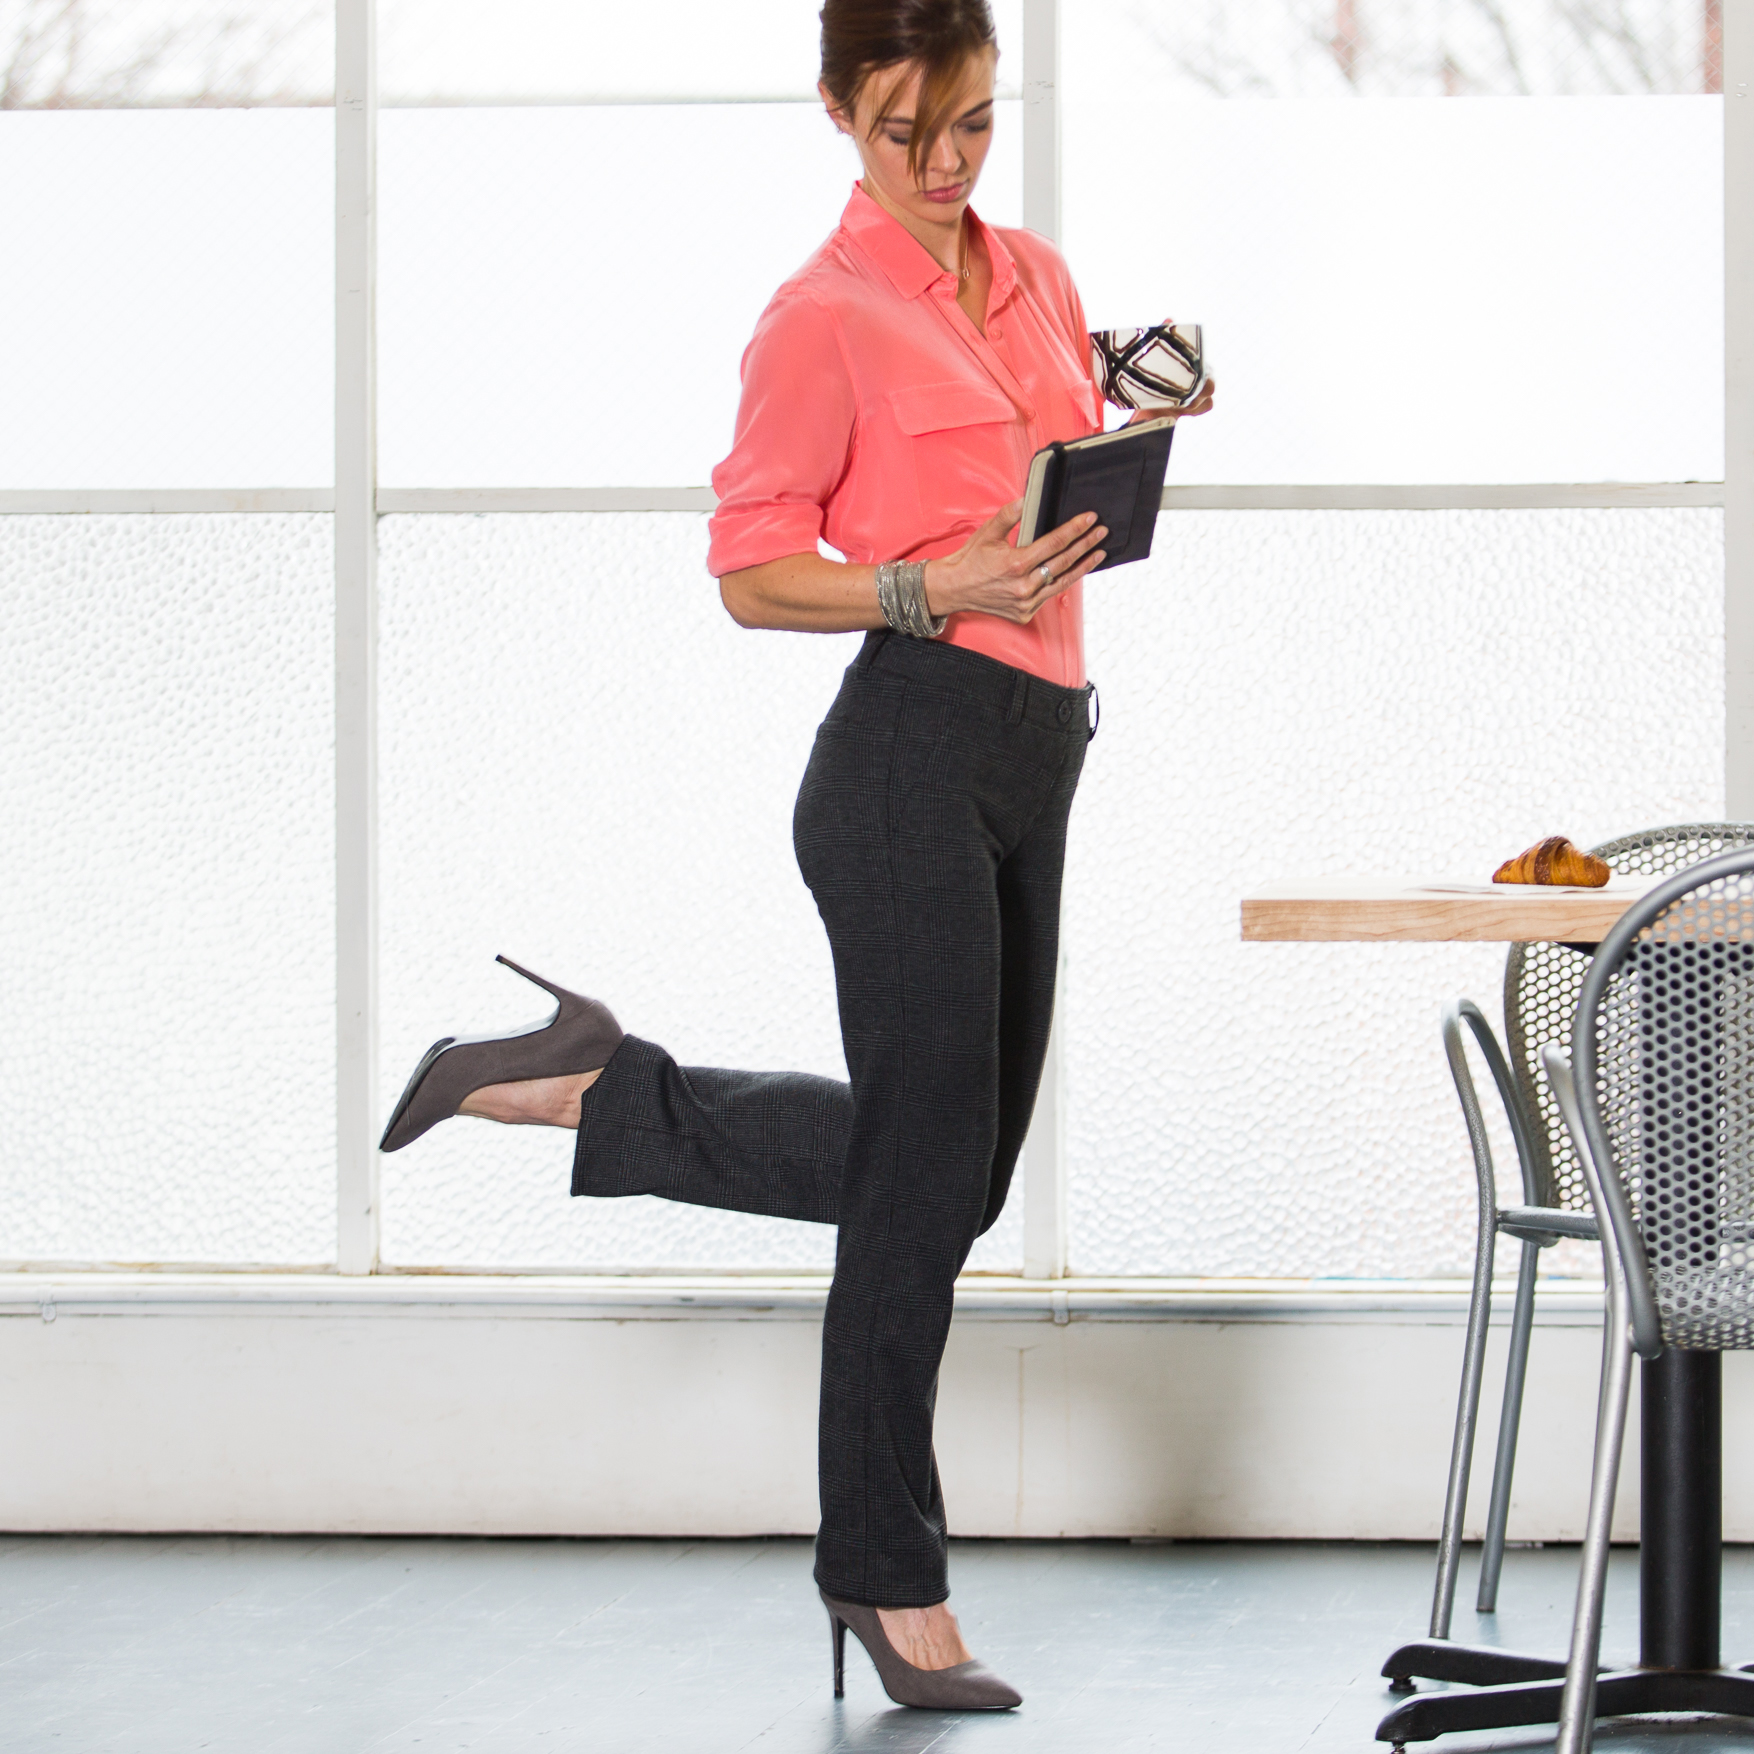 Skinny Girl Yoga Pants | Styling Yoga Pants | Betabrand Yoga Dress Pants